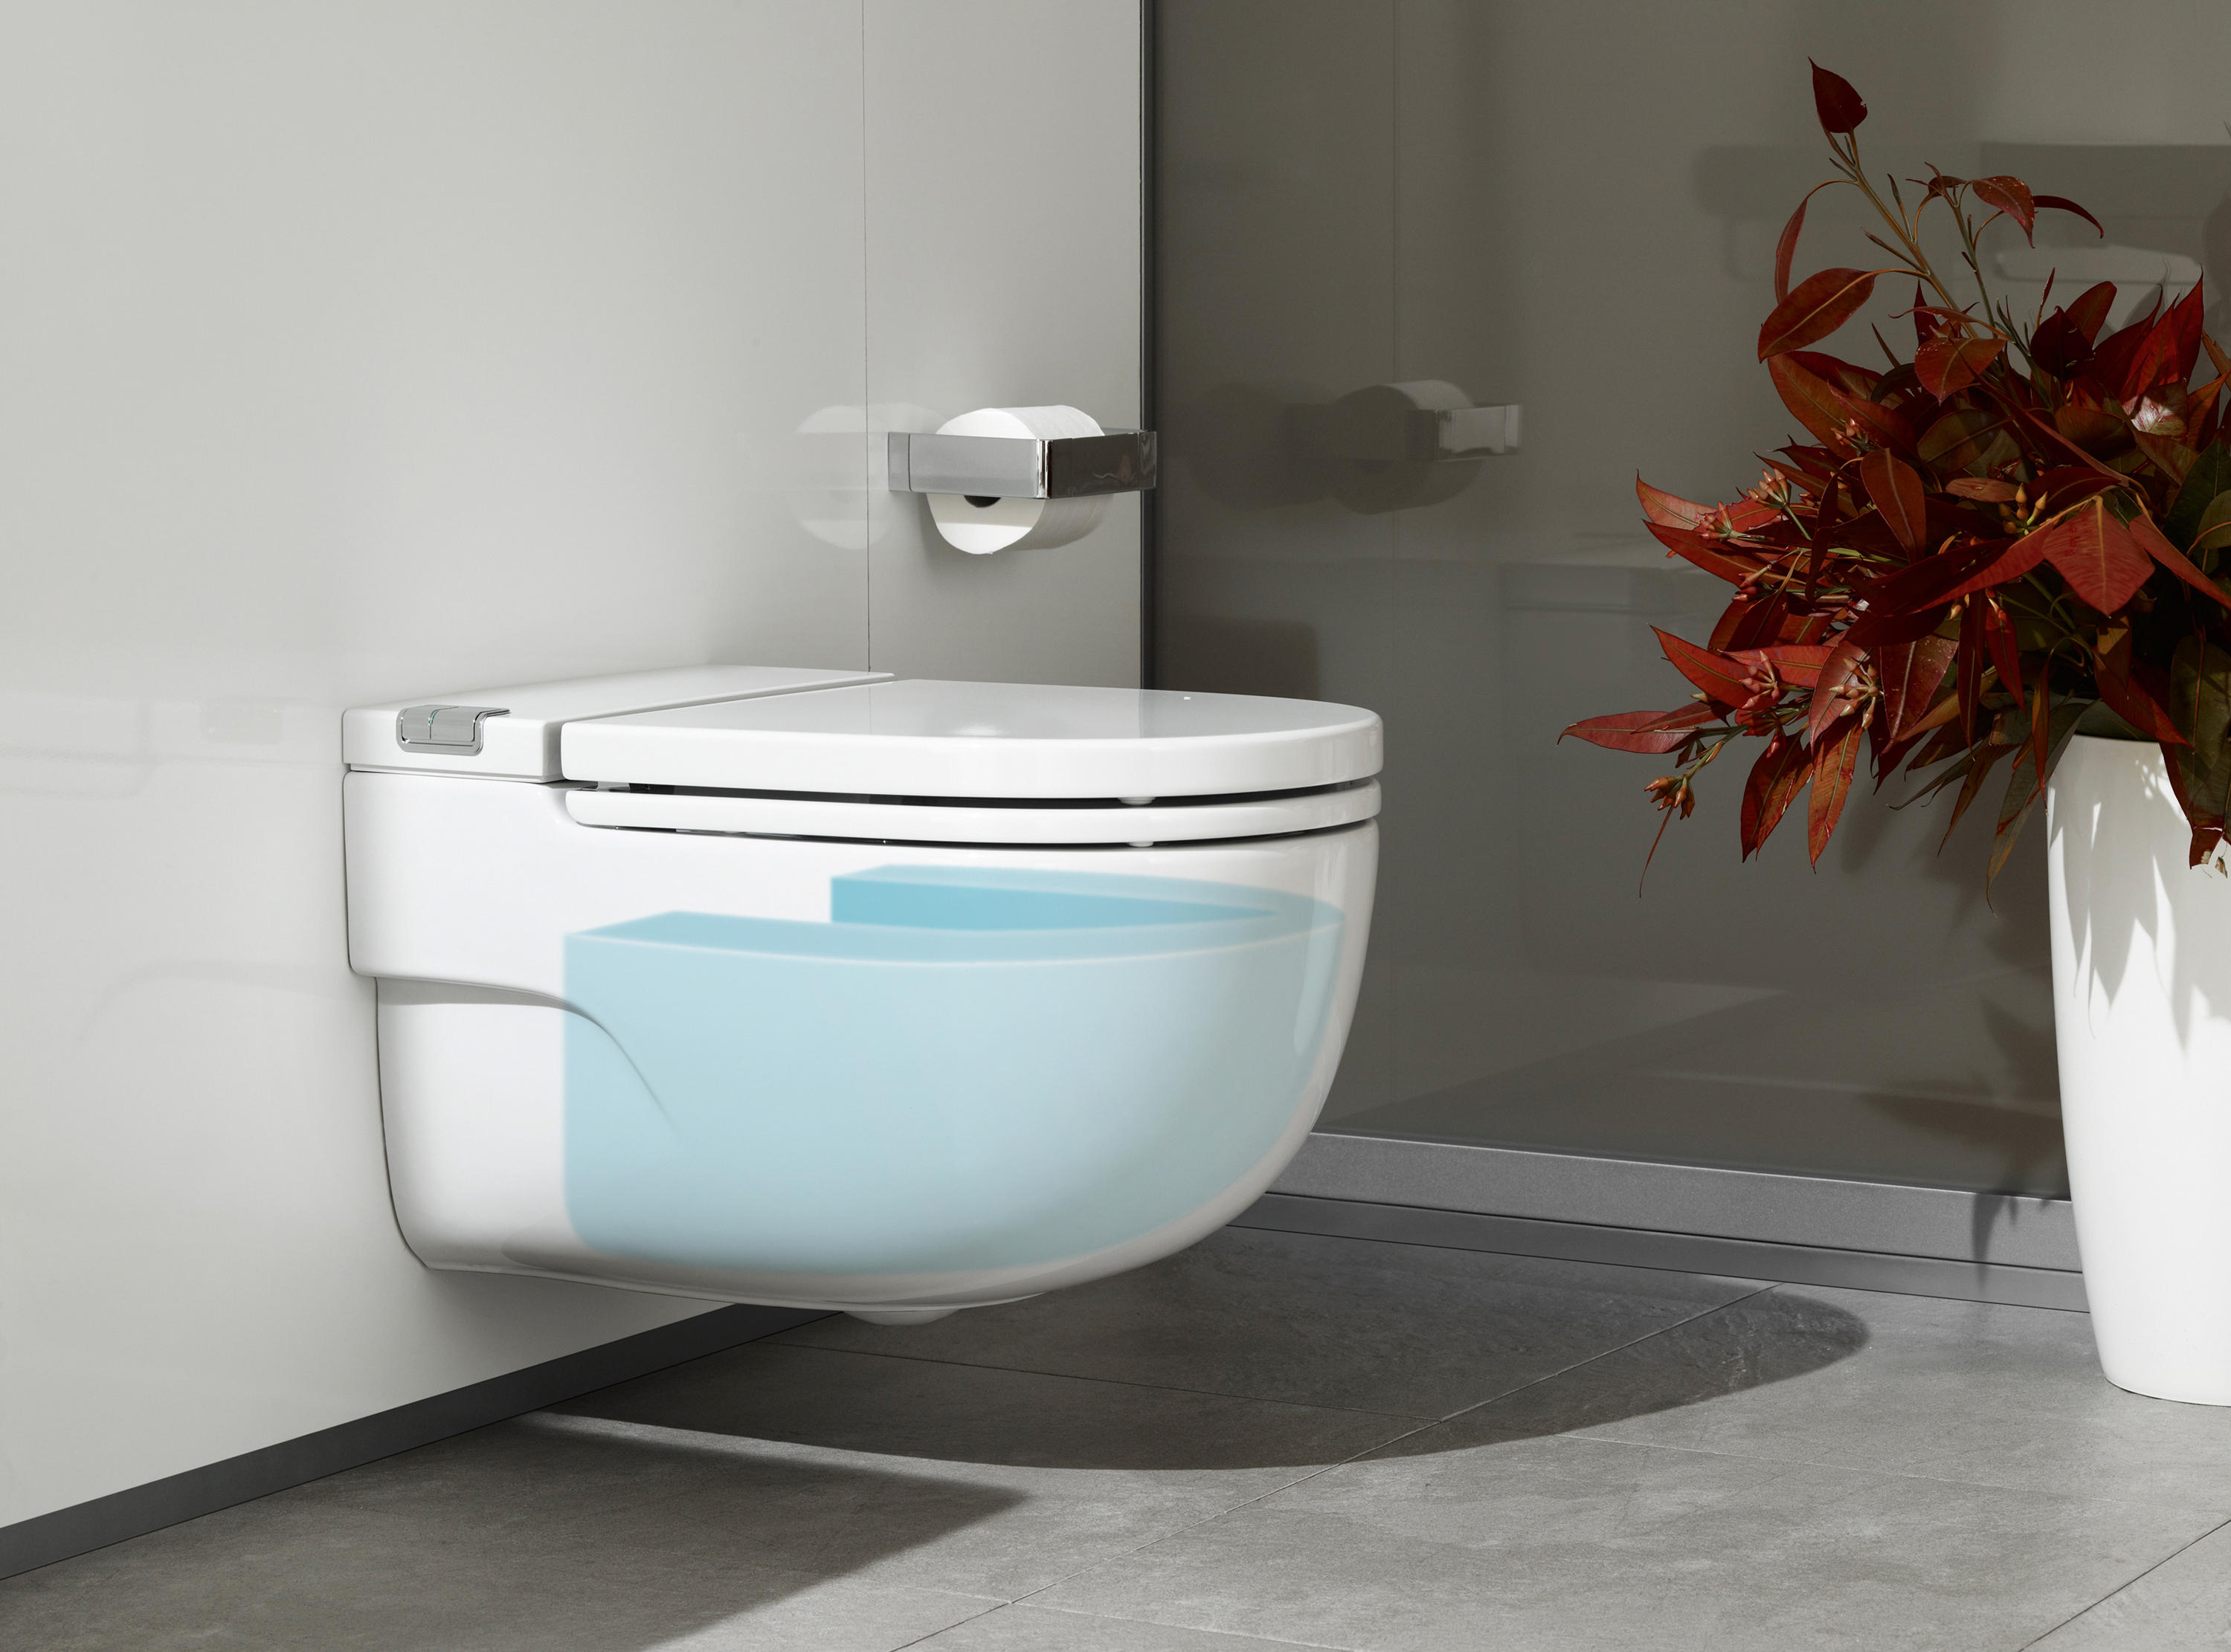 Sanitarios Victoria De Roca In Tank Wc Toilets From Roca Architonic